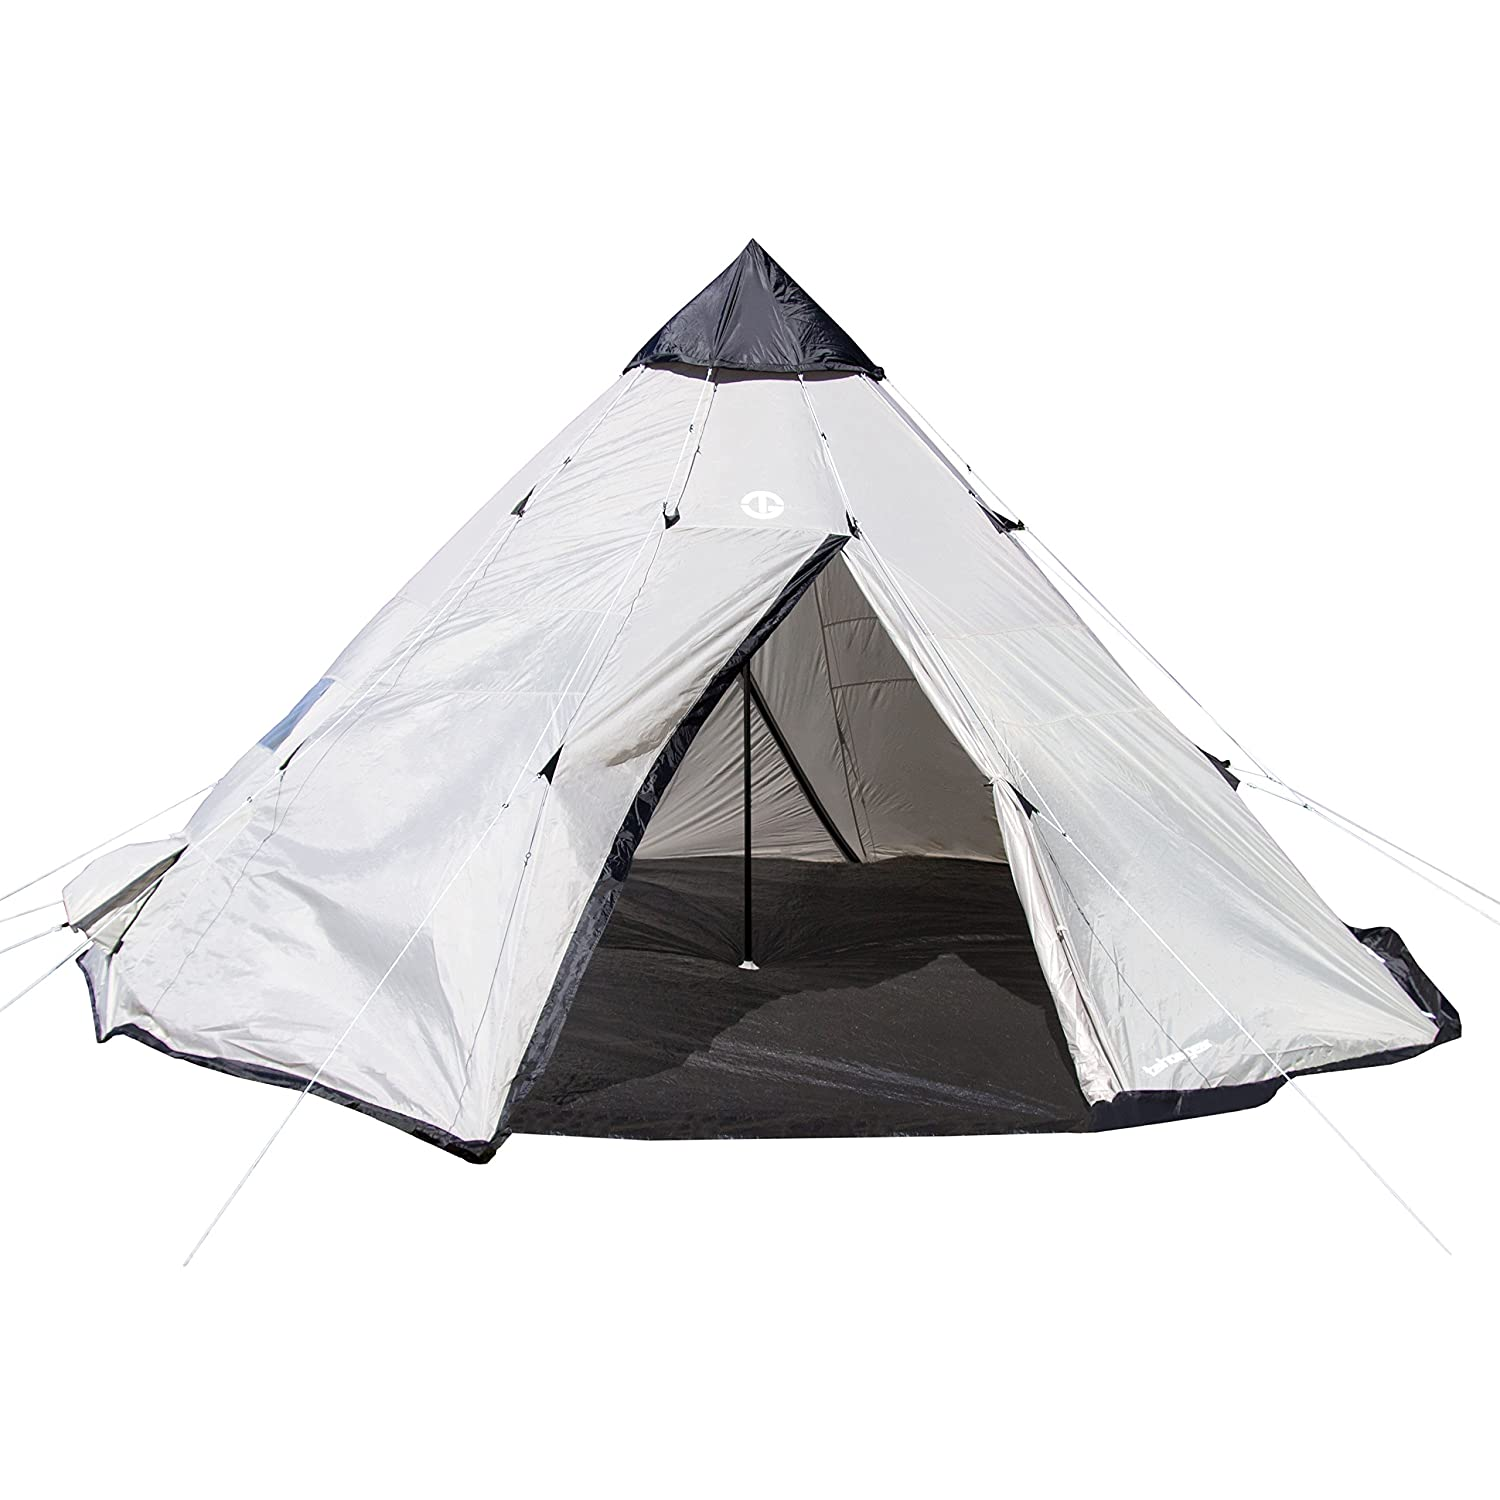 Amazon.com  Tahoe Gear Bighorn XL 12-Person 18u0027 x 18u0027 Teepee Cone Shape C&ing Tent  Sports u0026 Outdoors  sc 1 st  Amazon.com & Amazon.com : Tahoe Gear Bighorn XL 12-Person 18u0027 x 18u0027 Teepee Cone ...